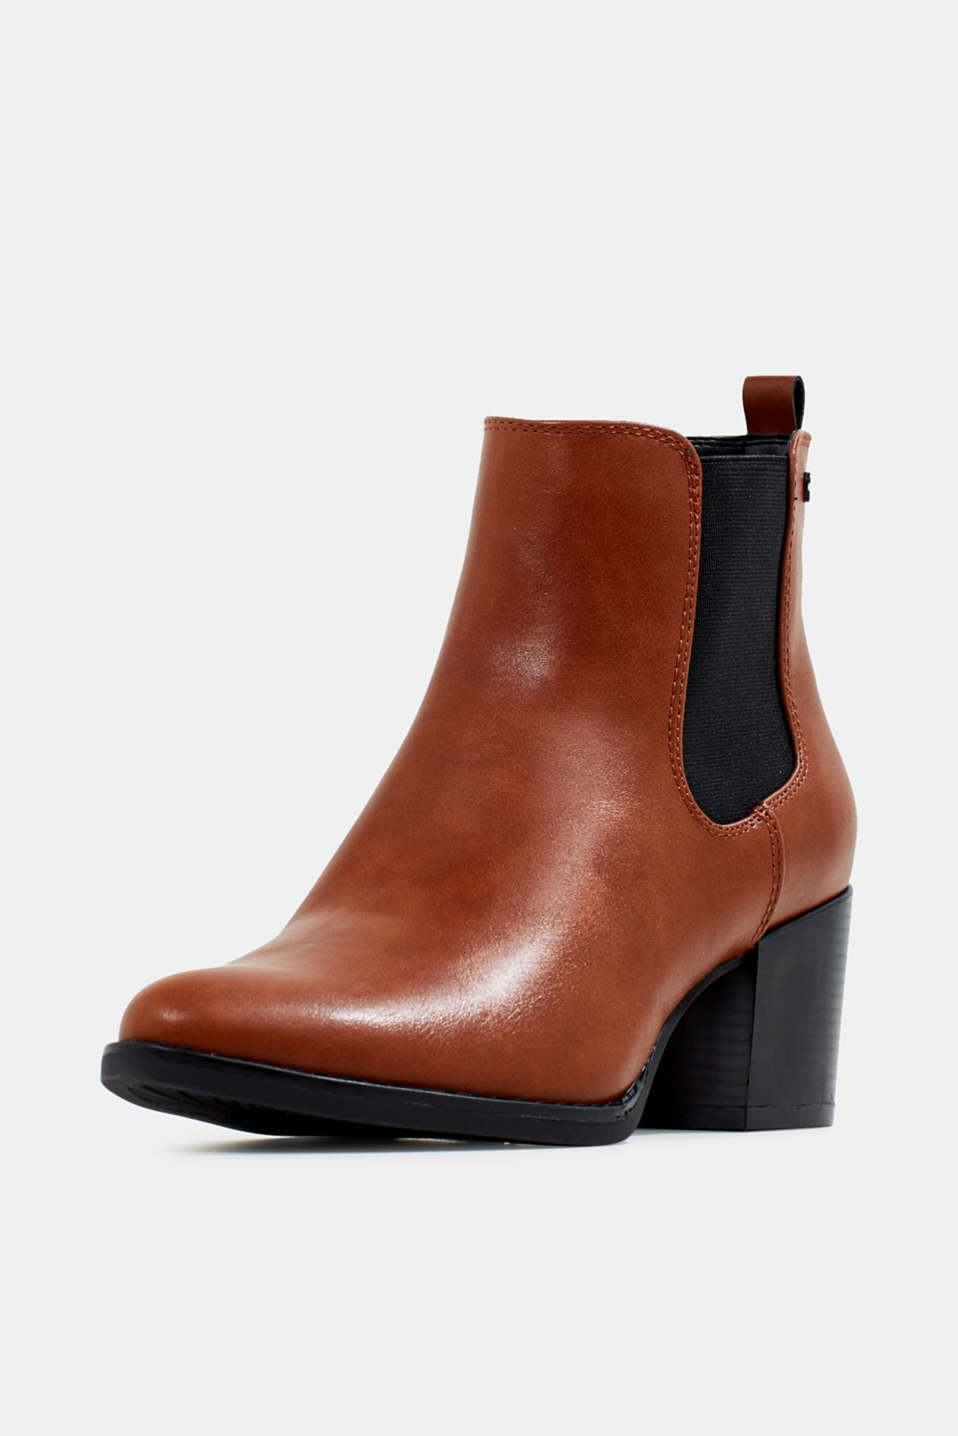 Heeled Chelsea boots, TOFFEE, detail image number 2